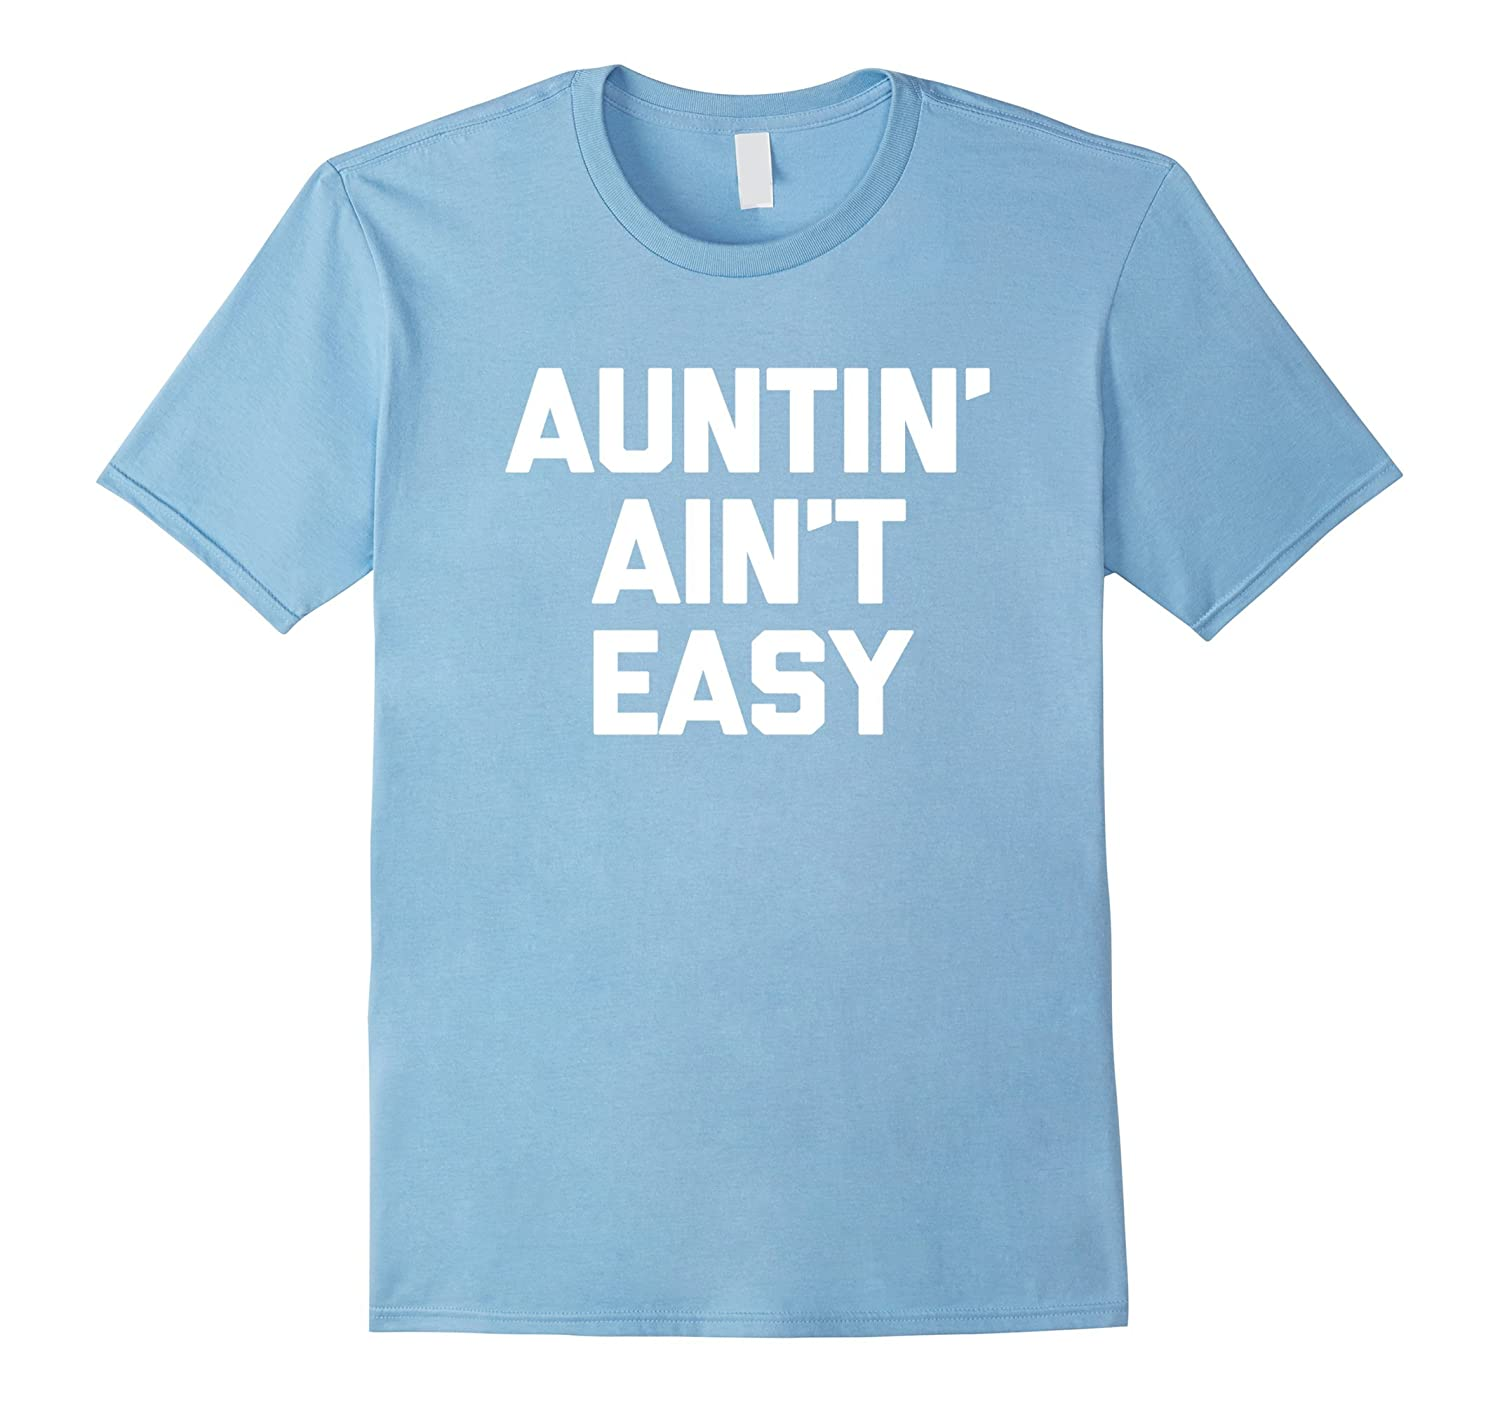 Auntin' Ain't Easy T-Shirt funny saying sarcastic Aunt humor-TH